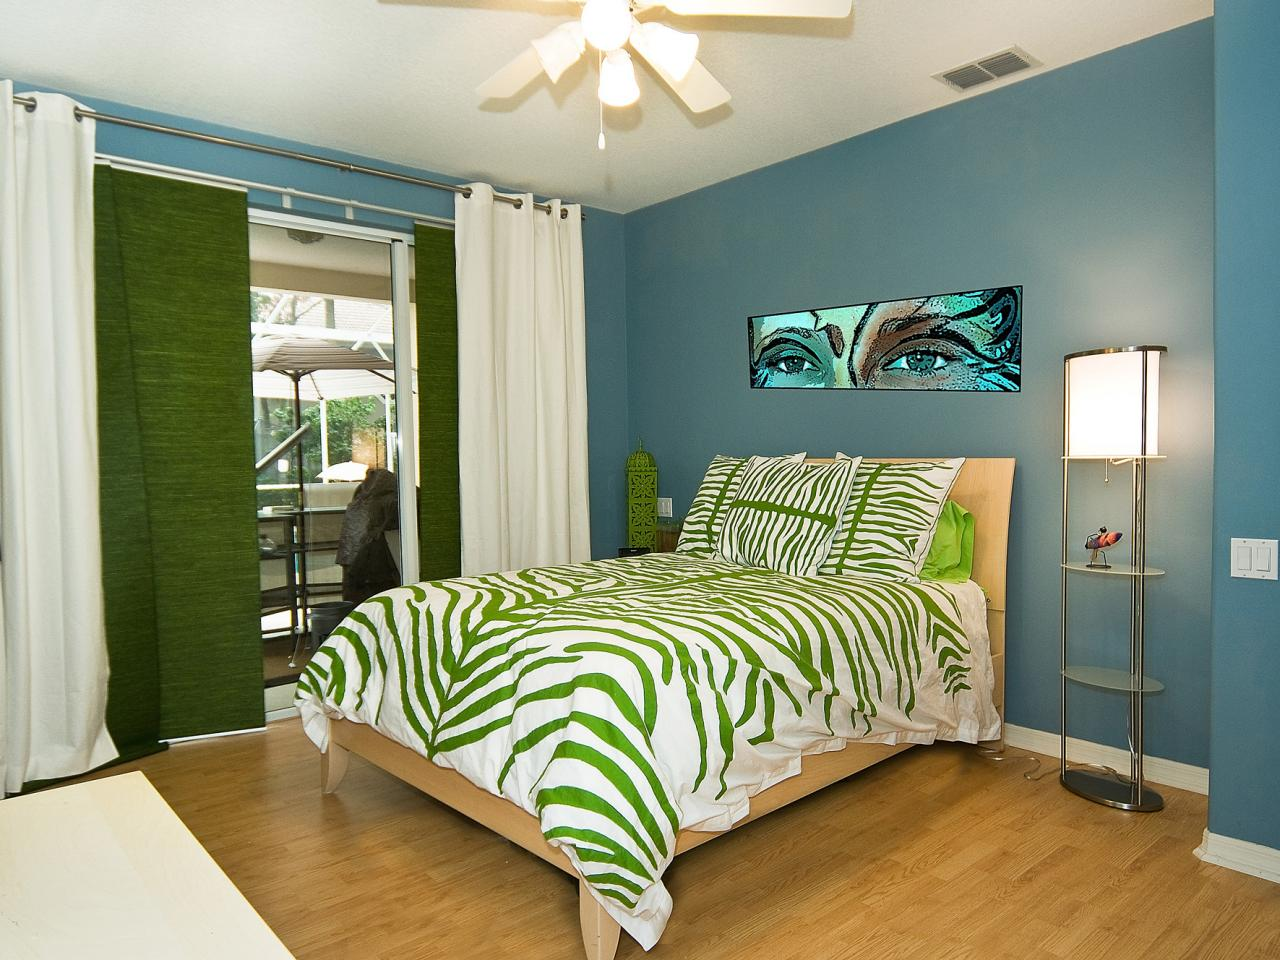 Sassy and sophisticated teen and tween bedroom ideas for Teen bedroom themes